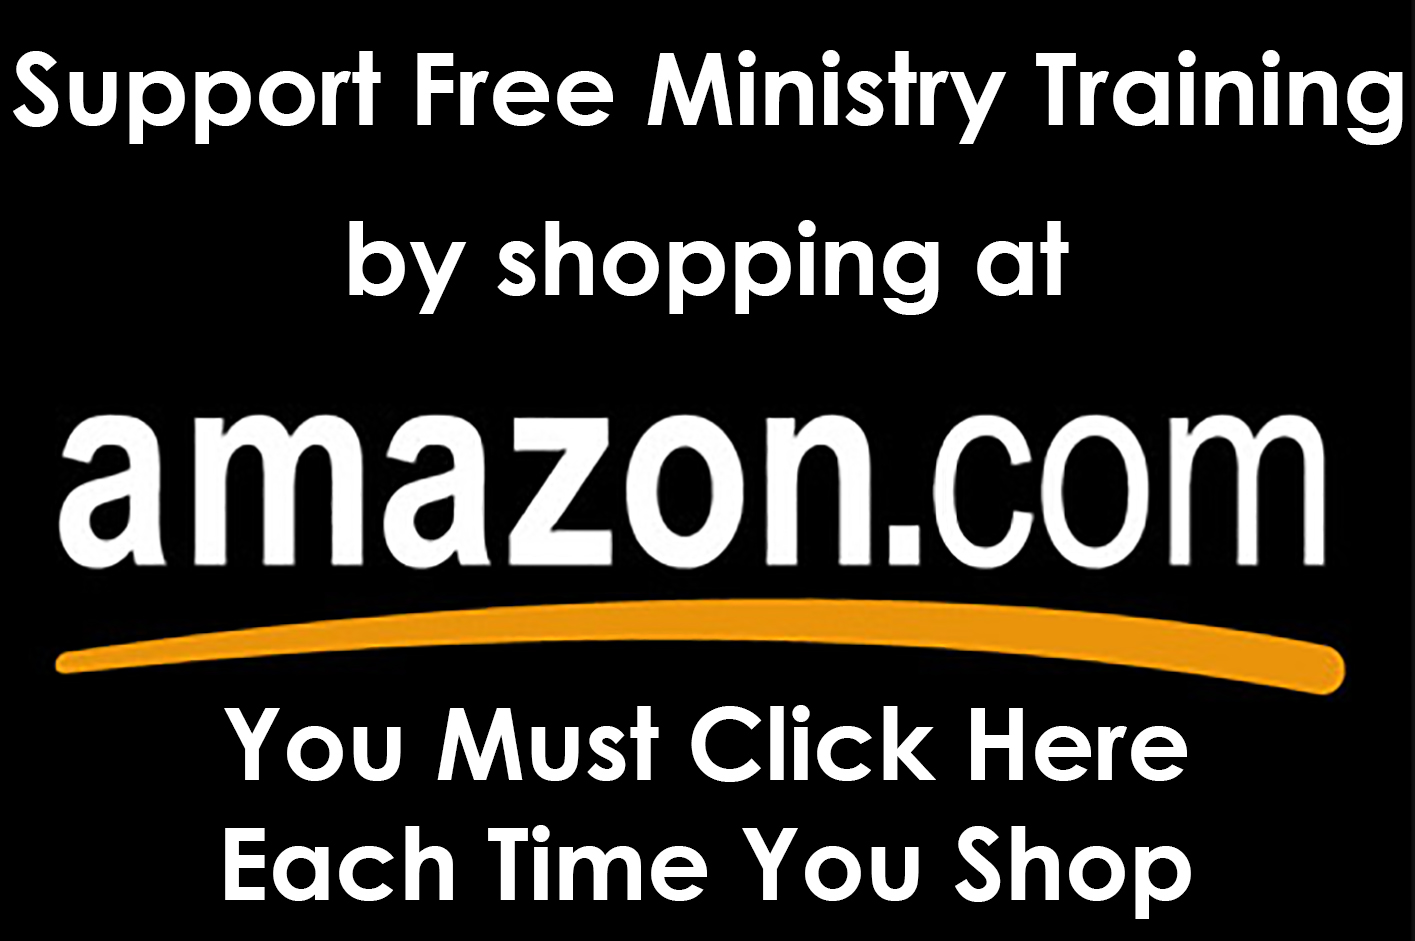 Shop at Amazon? Support Ministry Training when you do!